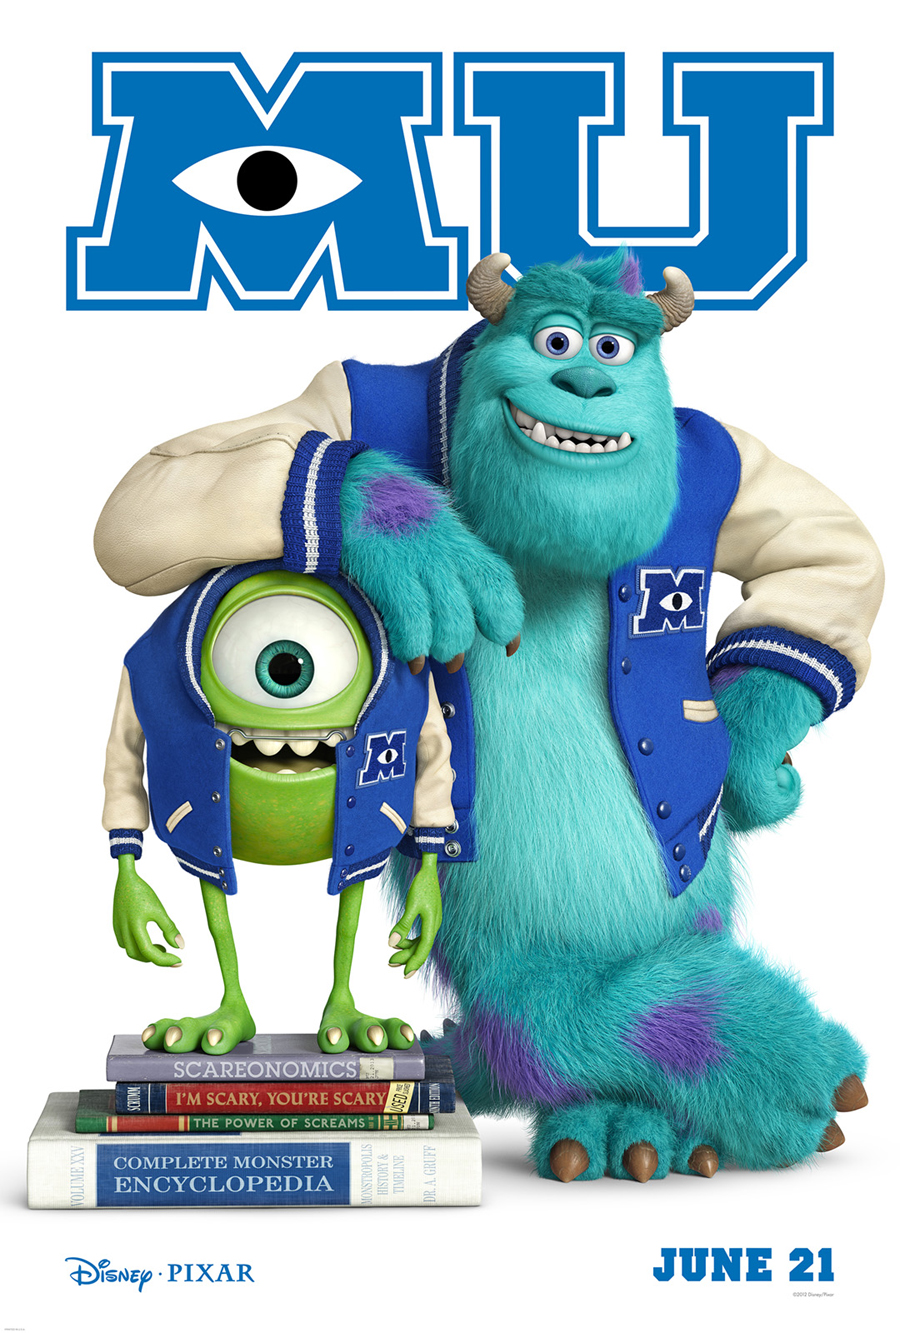 'Monsters University' Benefit Screening At Pixar On June 15